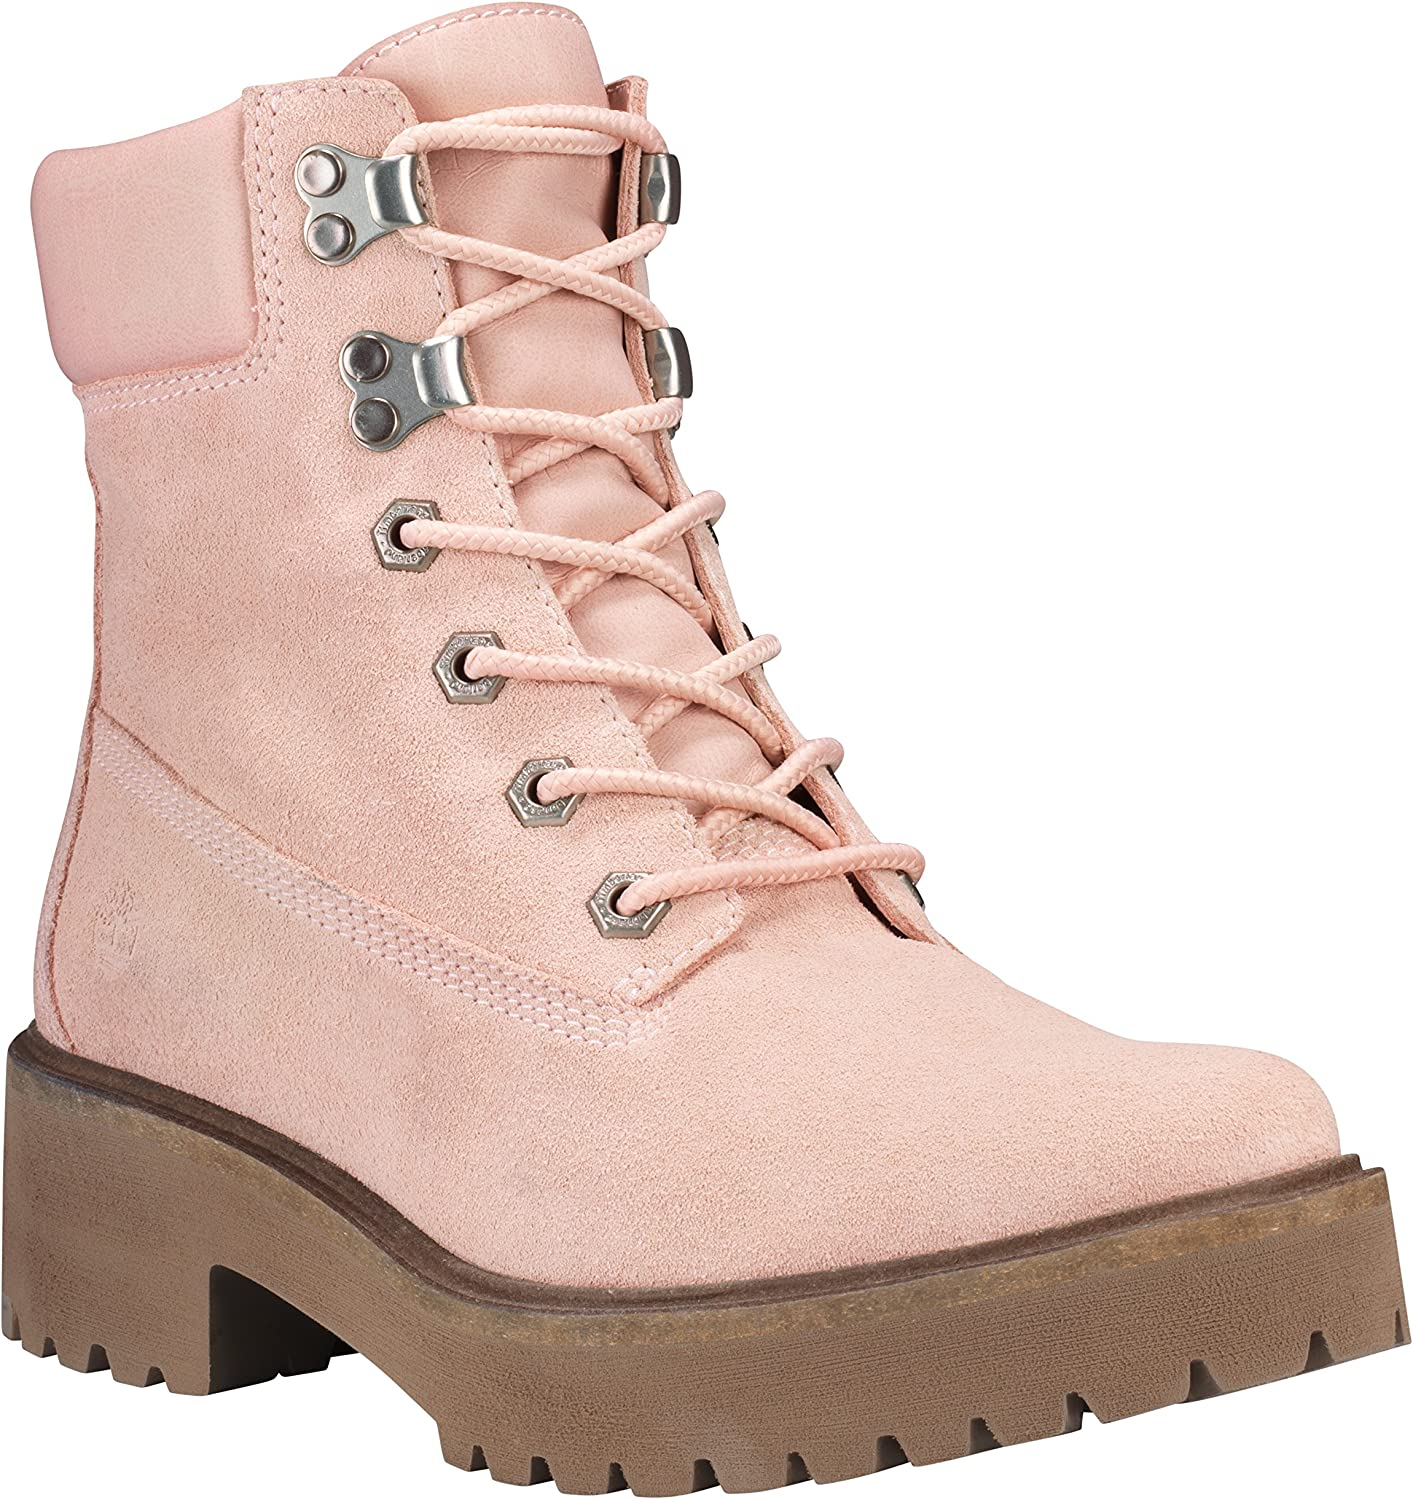 Timberland Carnaby Cool Bottes en Cuir pour Femme 15,2 cm